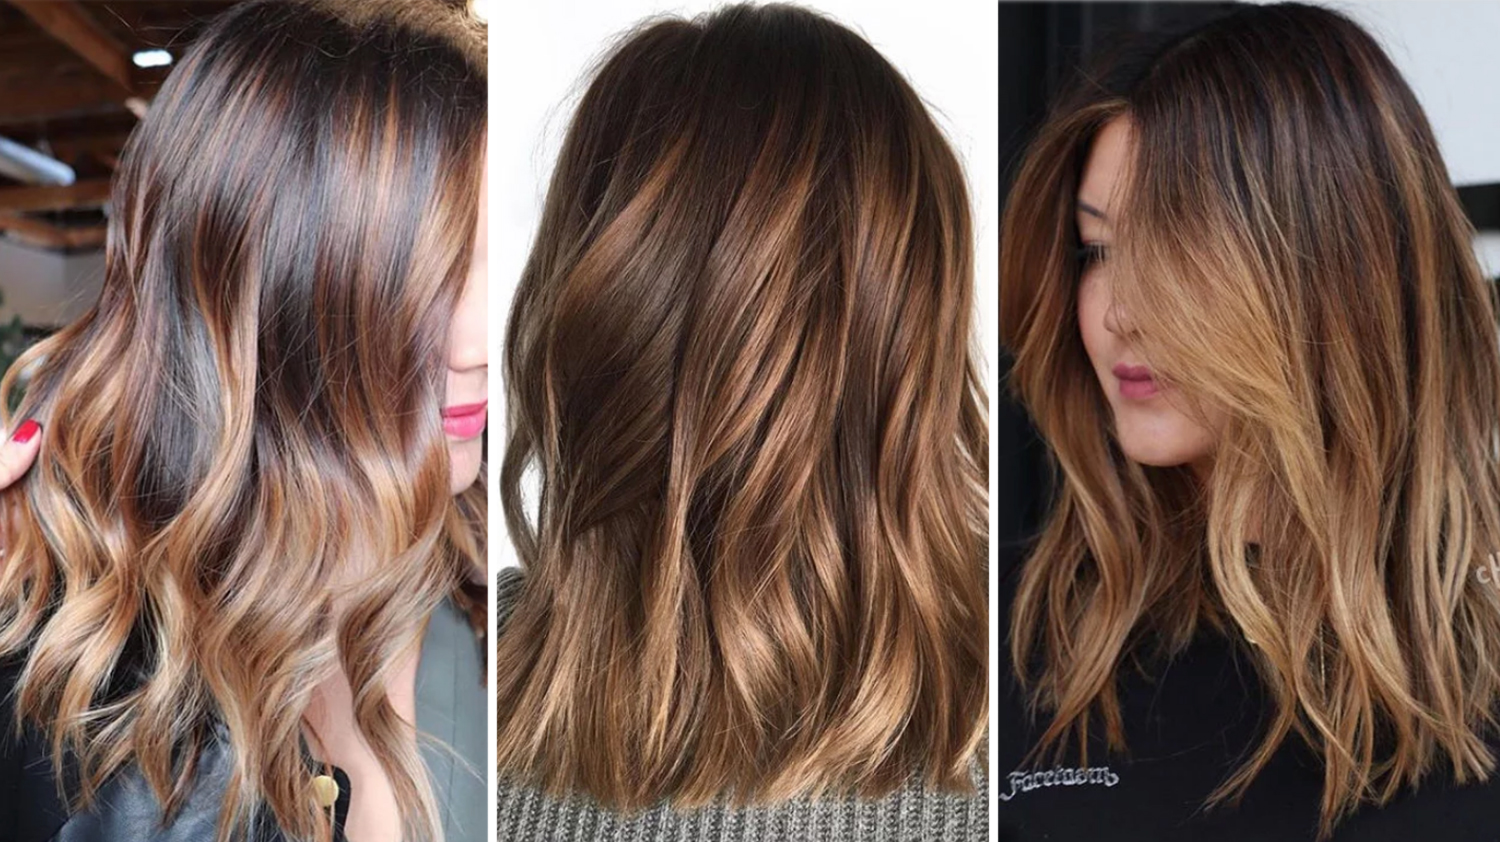 This Hair Color Trend for Brunettes Will Be HUGE This Summer